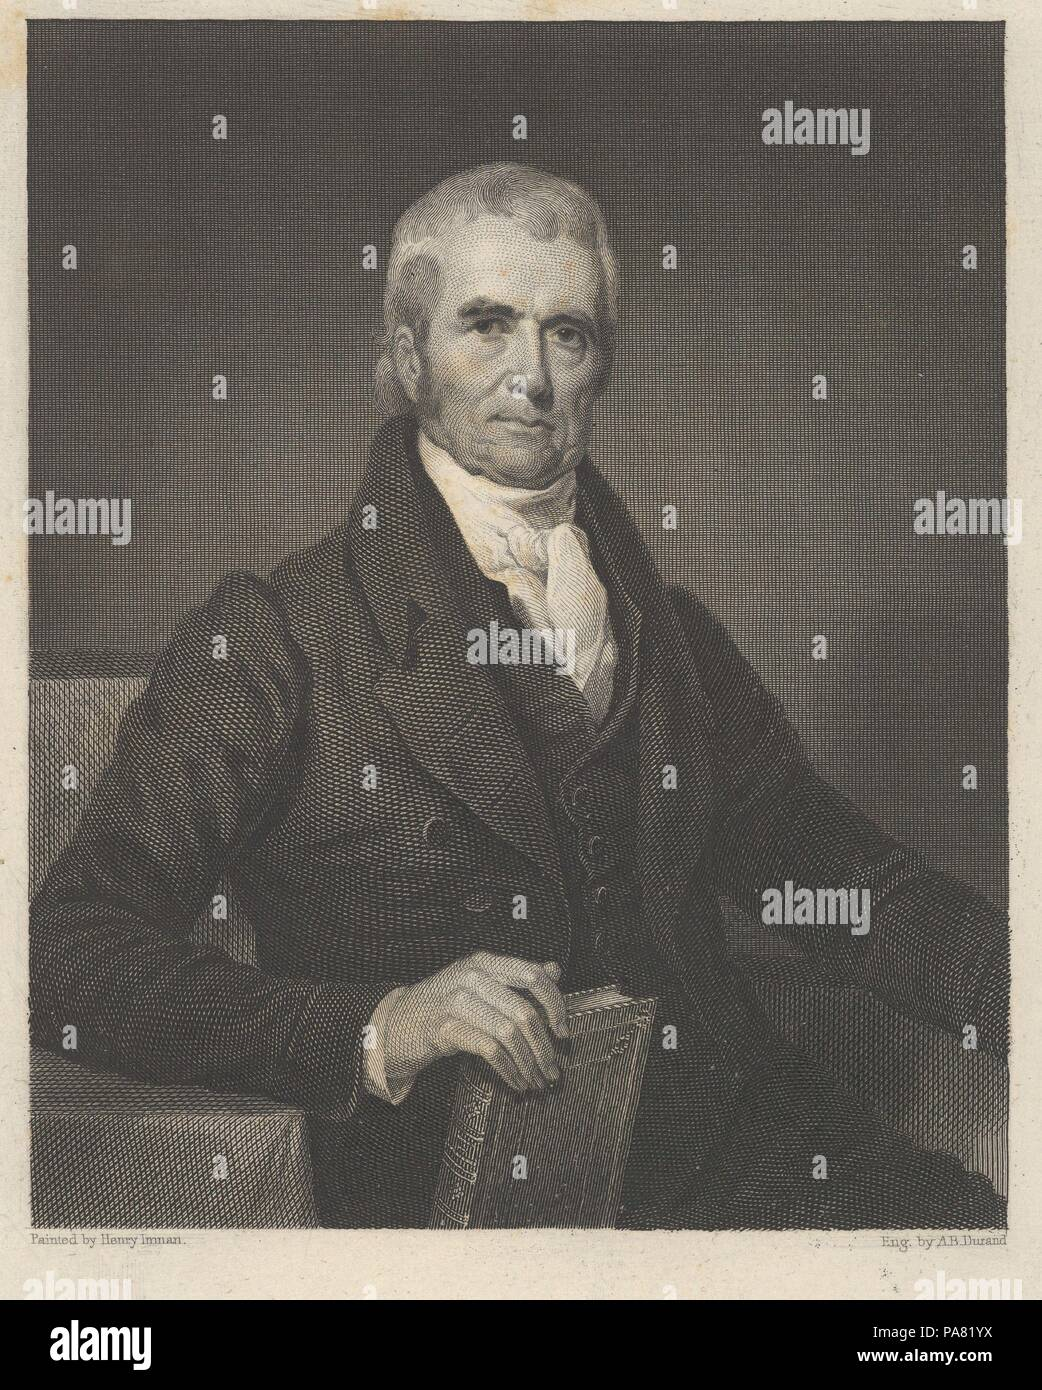 Chief Justice John Marshall. Artist: Asher Brown Durand (American, Jefferson, New Jersey 1796-1886 Maplewood, New Jersey); After Henry Inman (American, Utica, New York 1801-1846 New York). Dimensions: image: 4 5/8 x 3 3/4 in. (11.7 x 9.5 cm)  plate: 9 5/16 x 6 7/16 in. (23.6 x 16.3 cm). Sitter: John Marshall (American, 1755-1835). Date: 1833. Museum: Metropolitan Museum of Art, New York, USA. - Stock Image